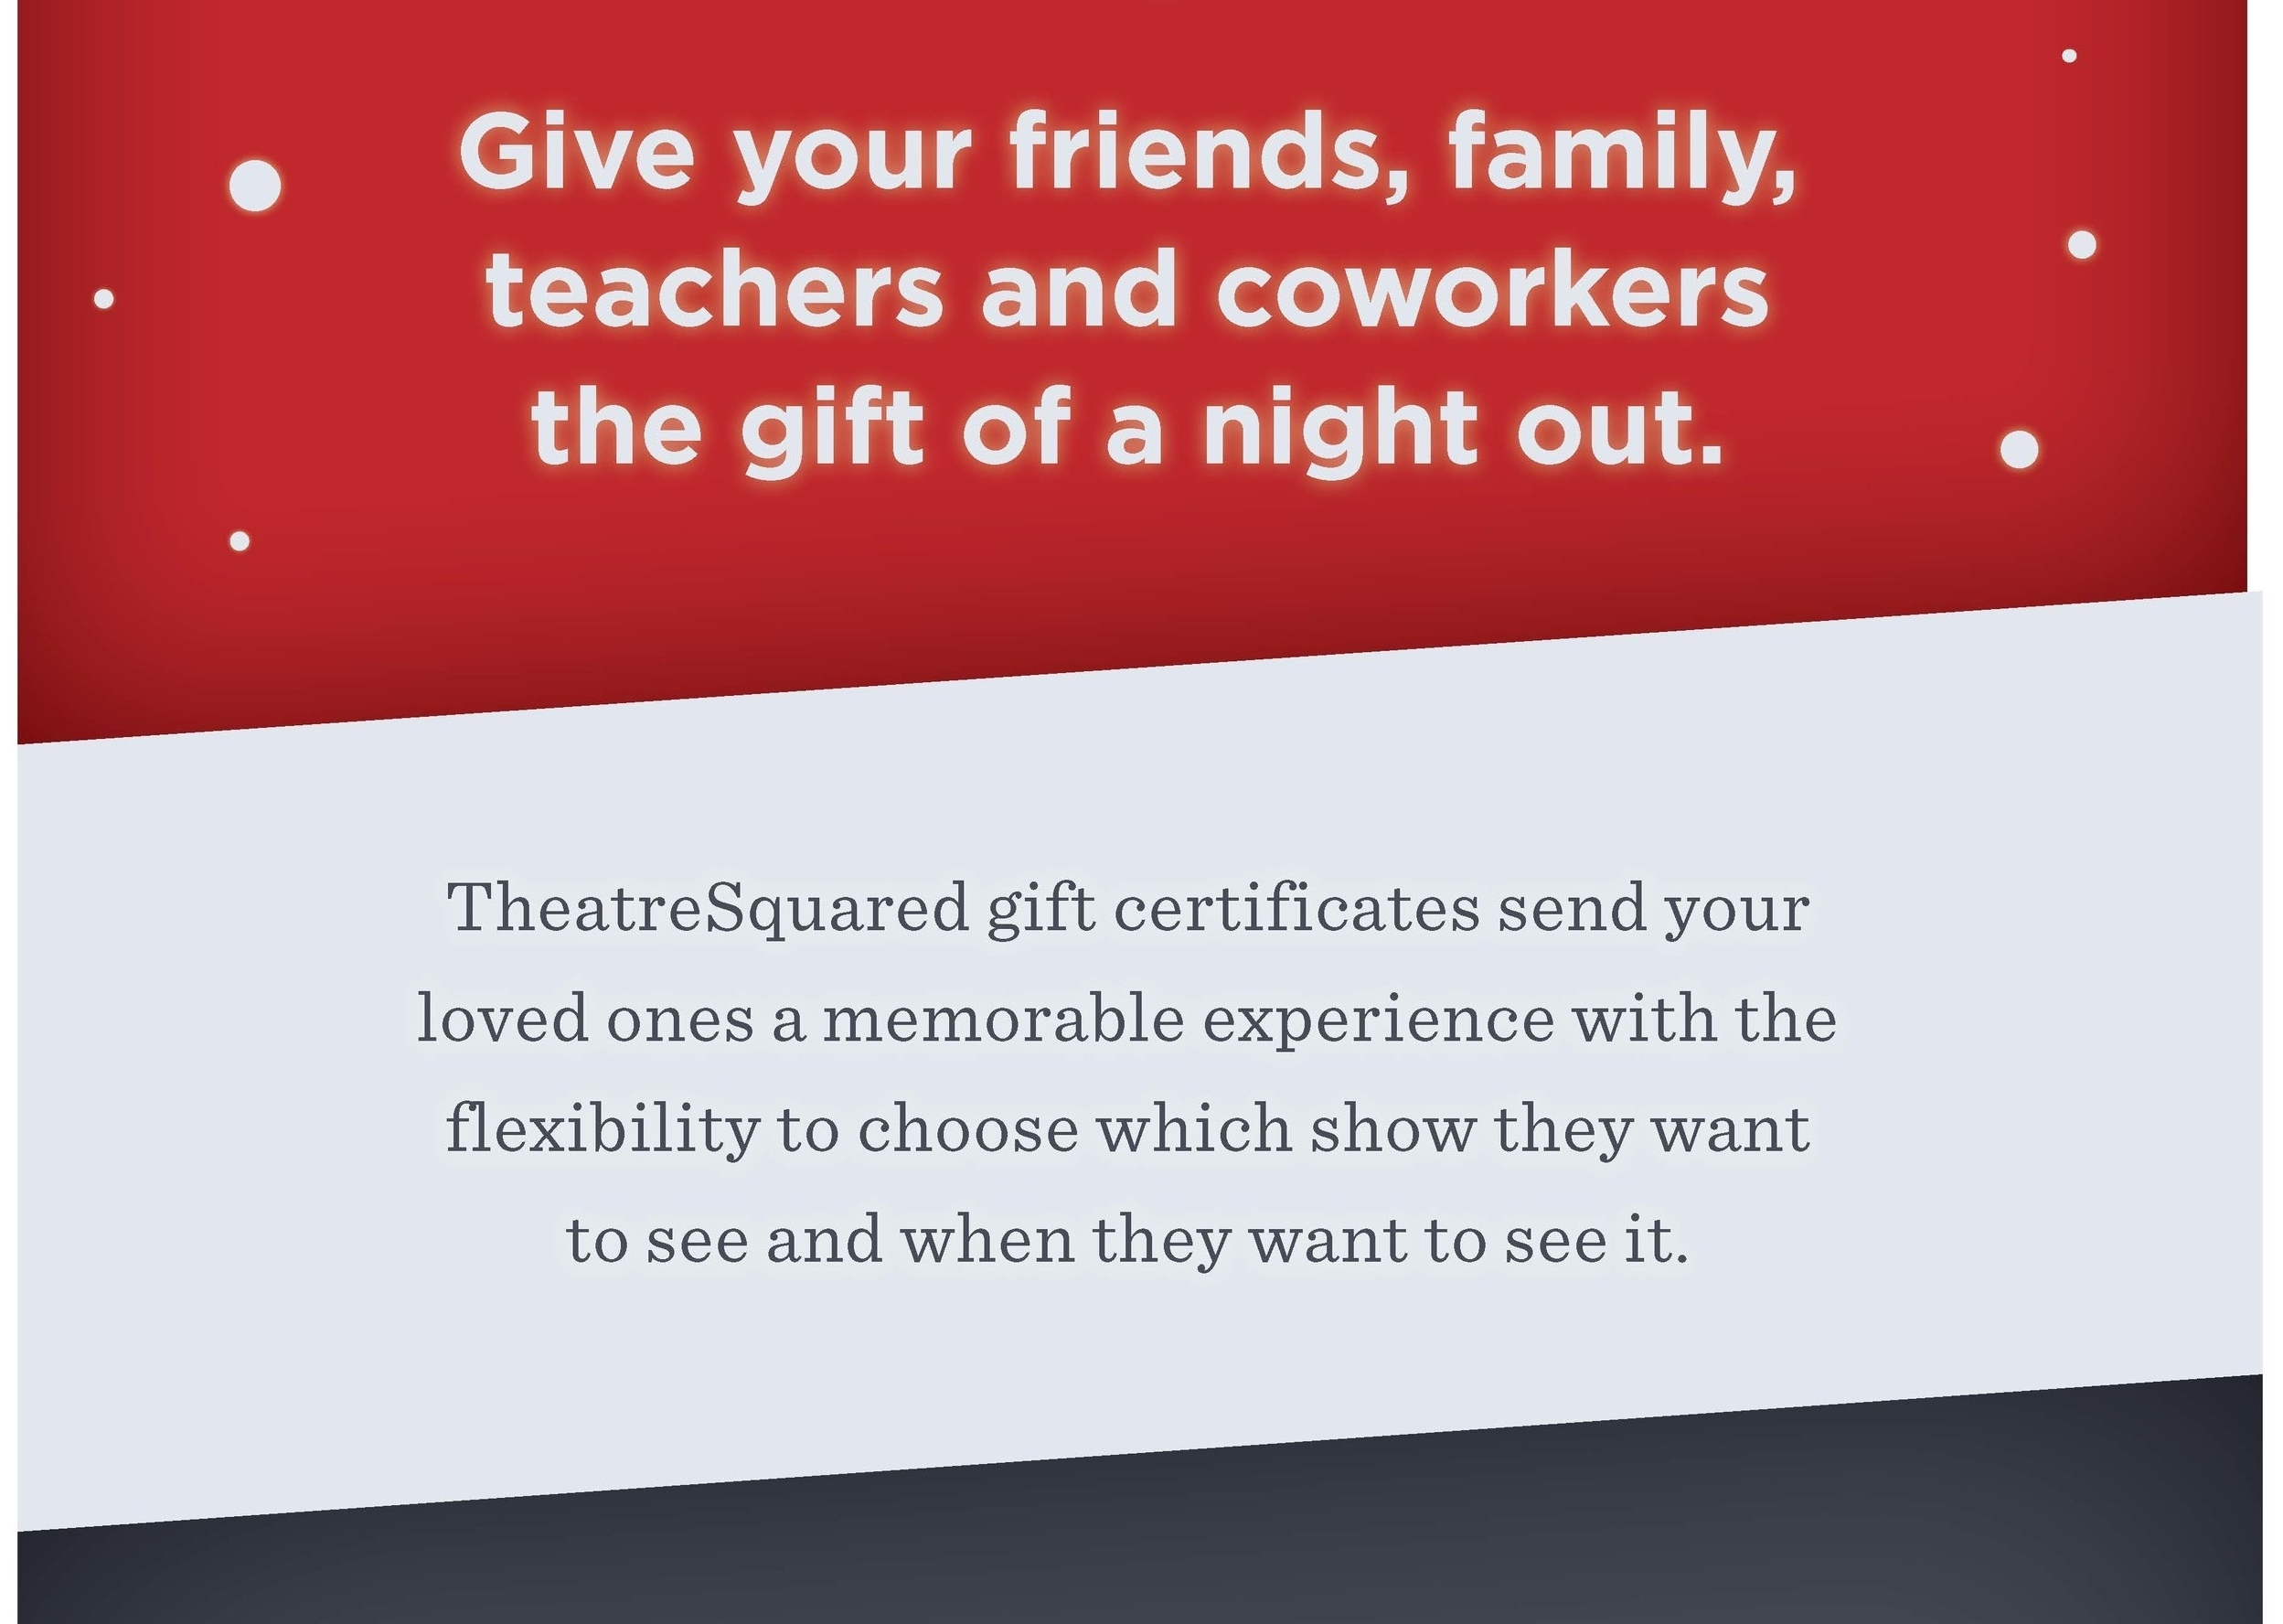 Reserve your gift of remarkable live theatre, call 479.443.5600 or checkout below, or in person at the box office in Walton Arts Center's Nadine Baum Studio